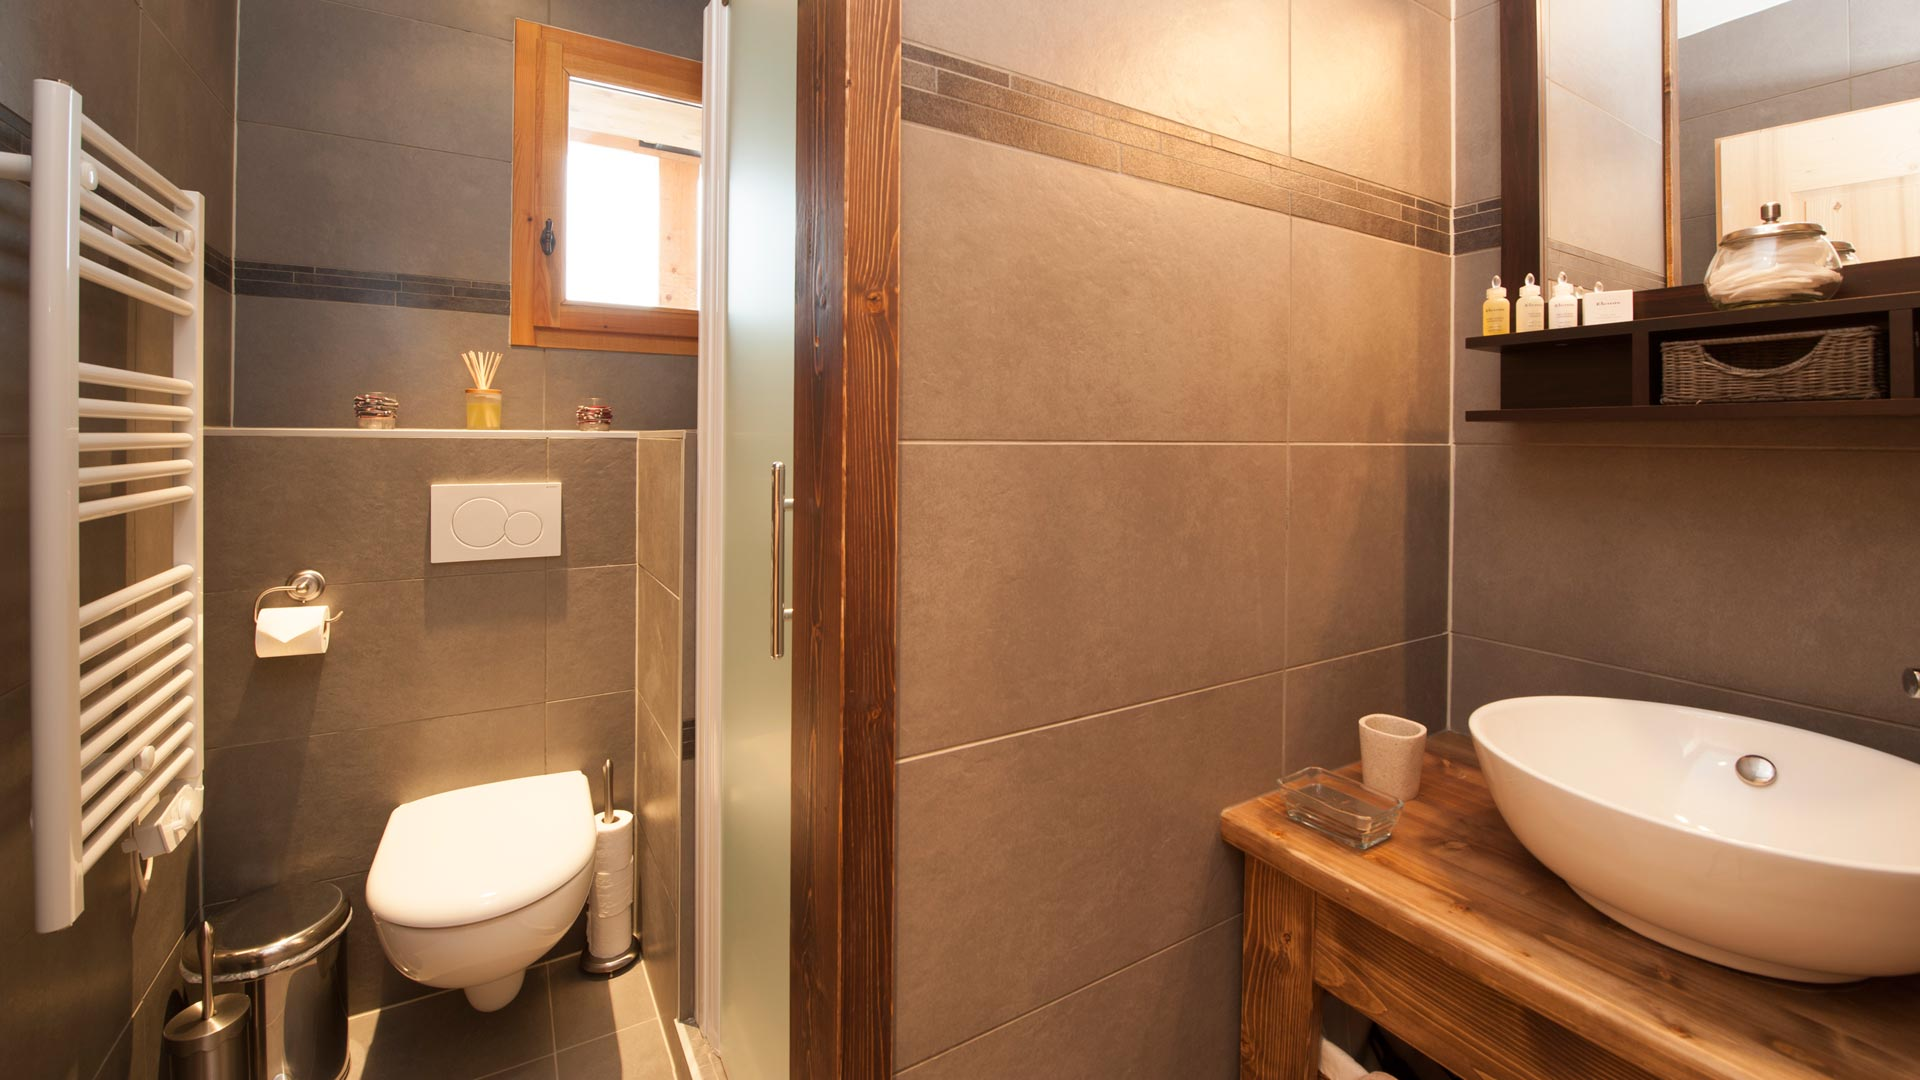 Ensuite Shower Room in Grand Solliet Chalet in Ste Foy